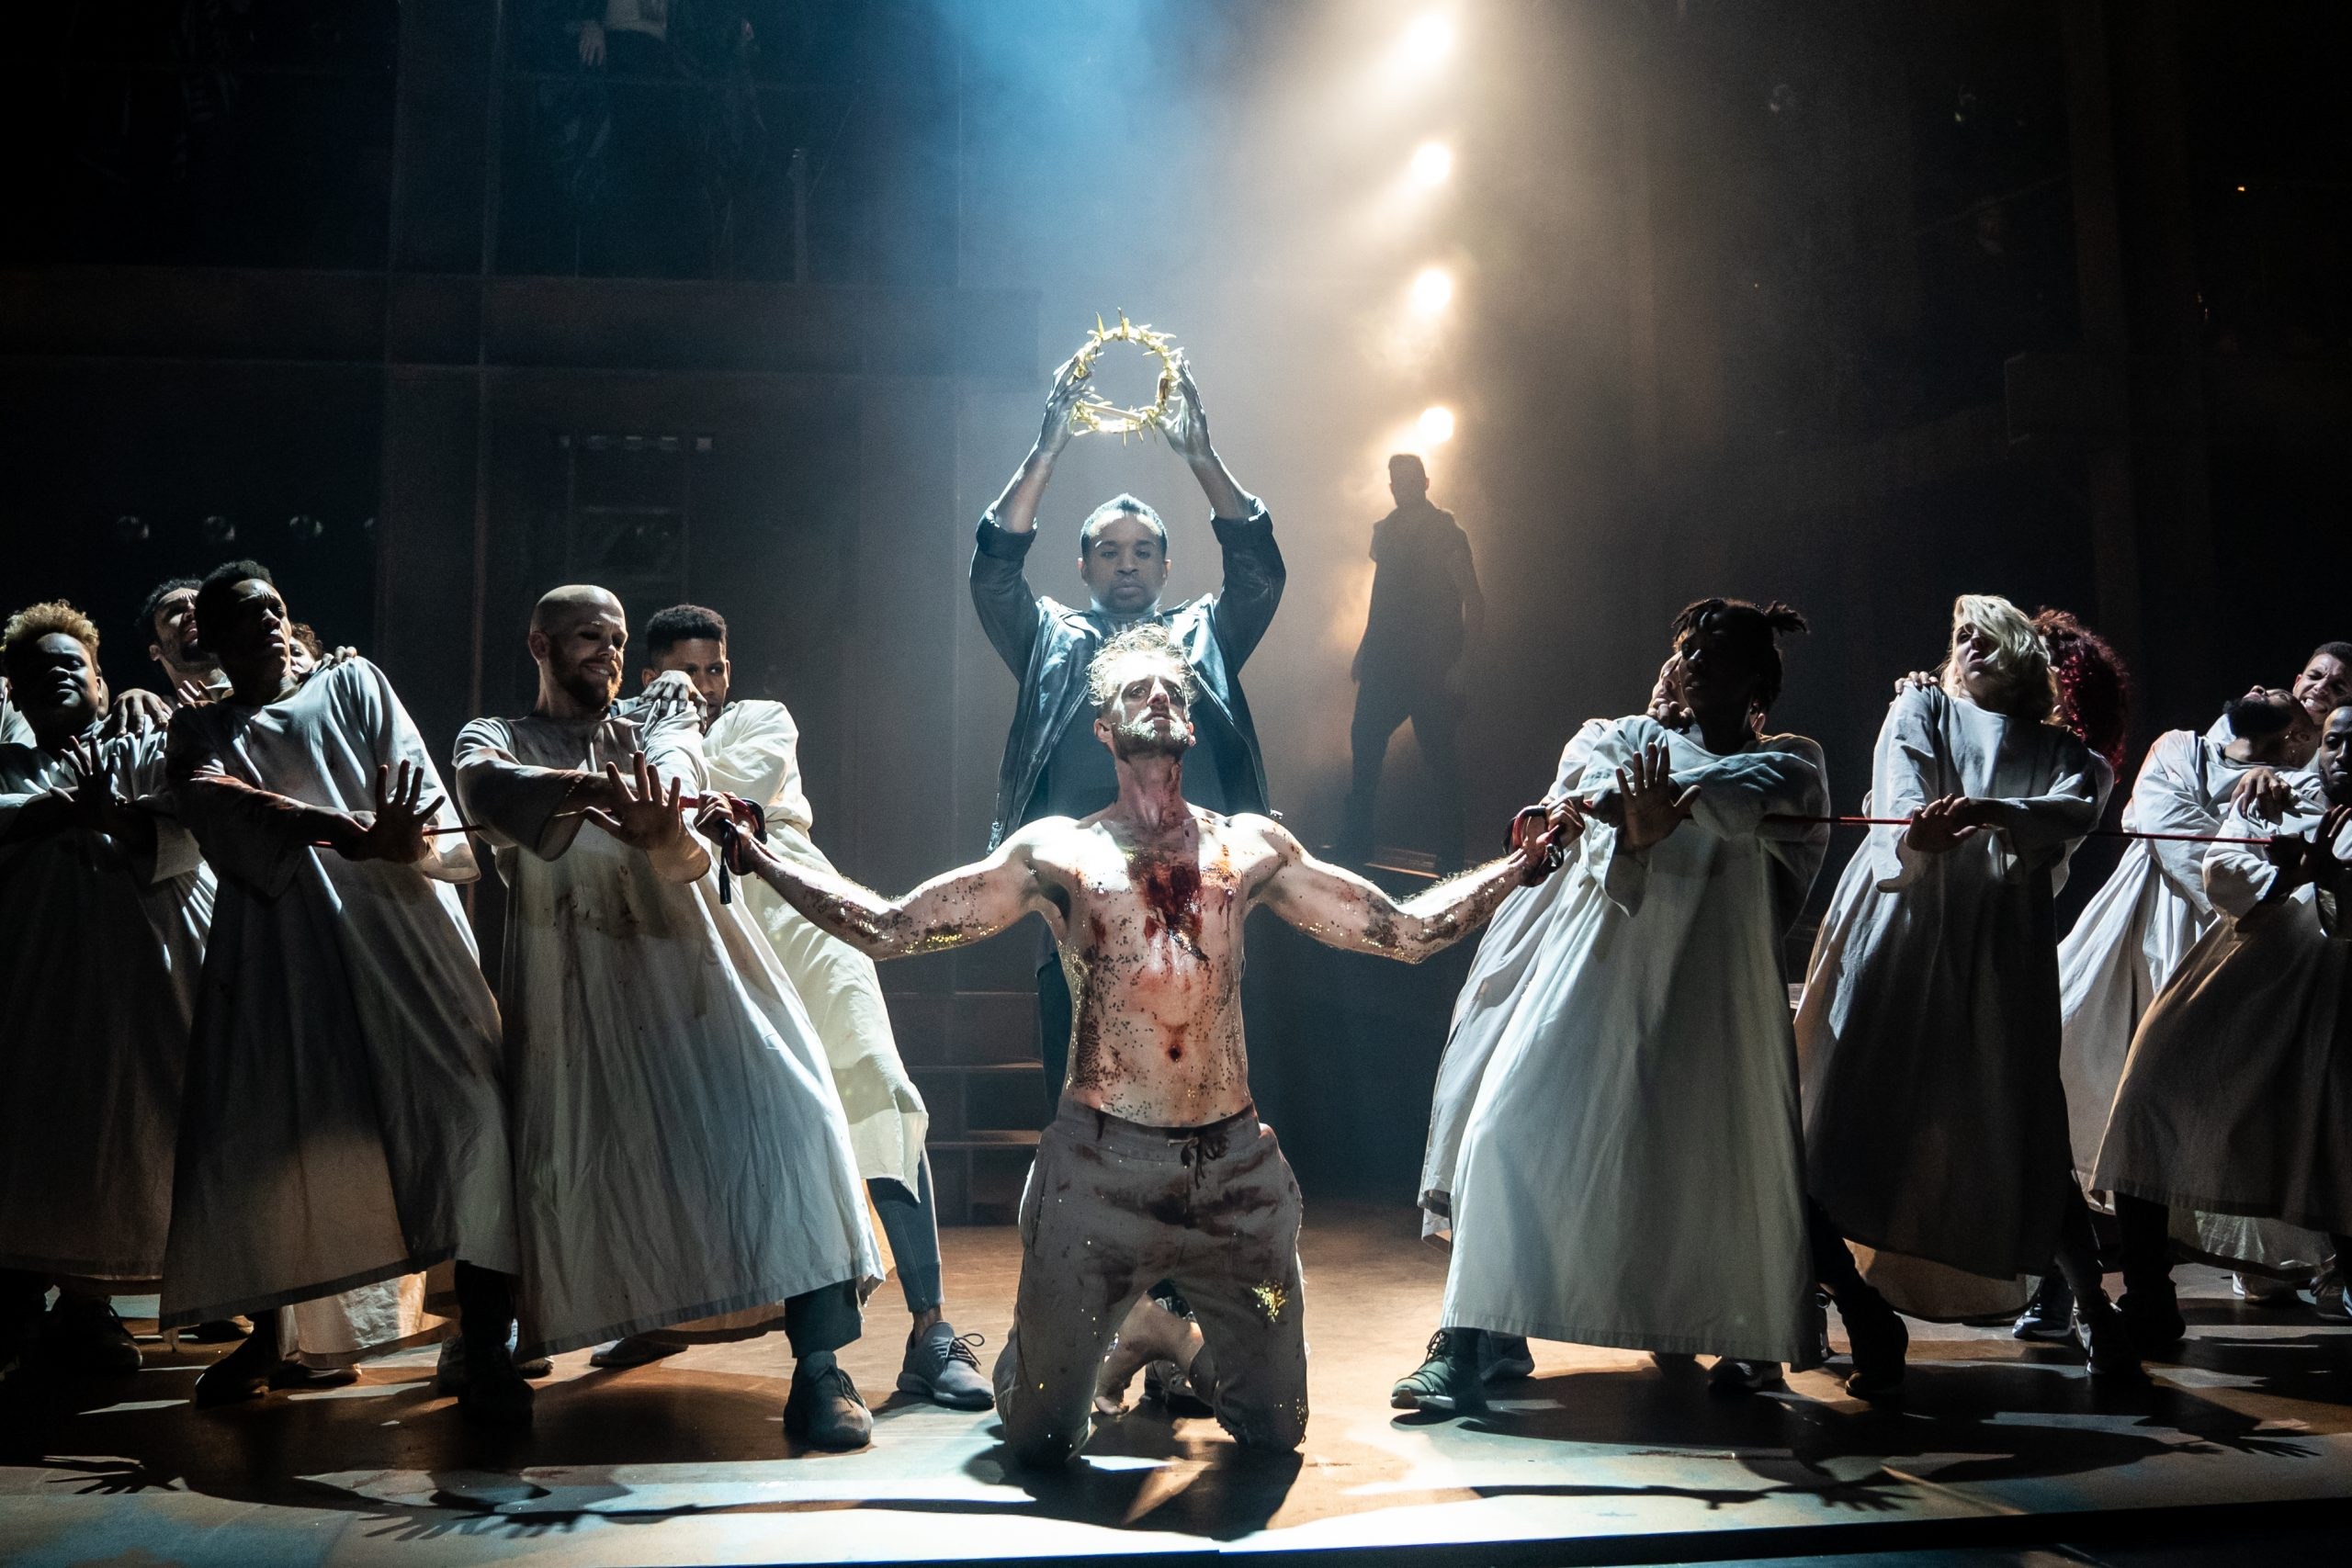 The new touring production of 'Jesus Christ Superstar' leads off a noteworthy series of music-related shows taking Pittsburgh theater into the new year. (photo: Matthew Murphy)